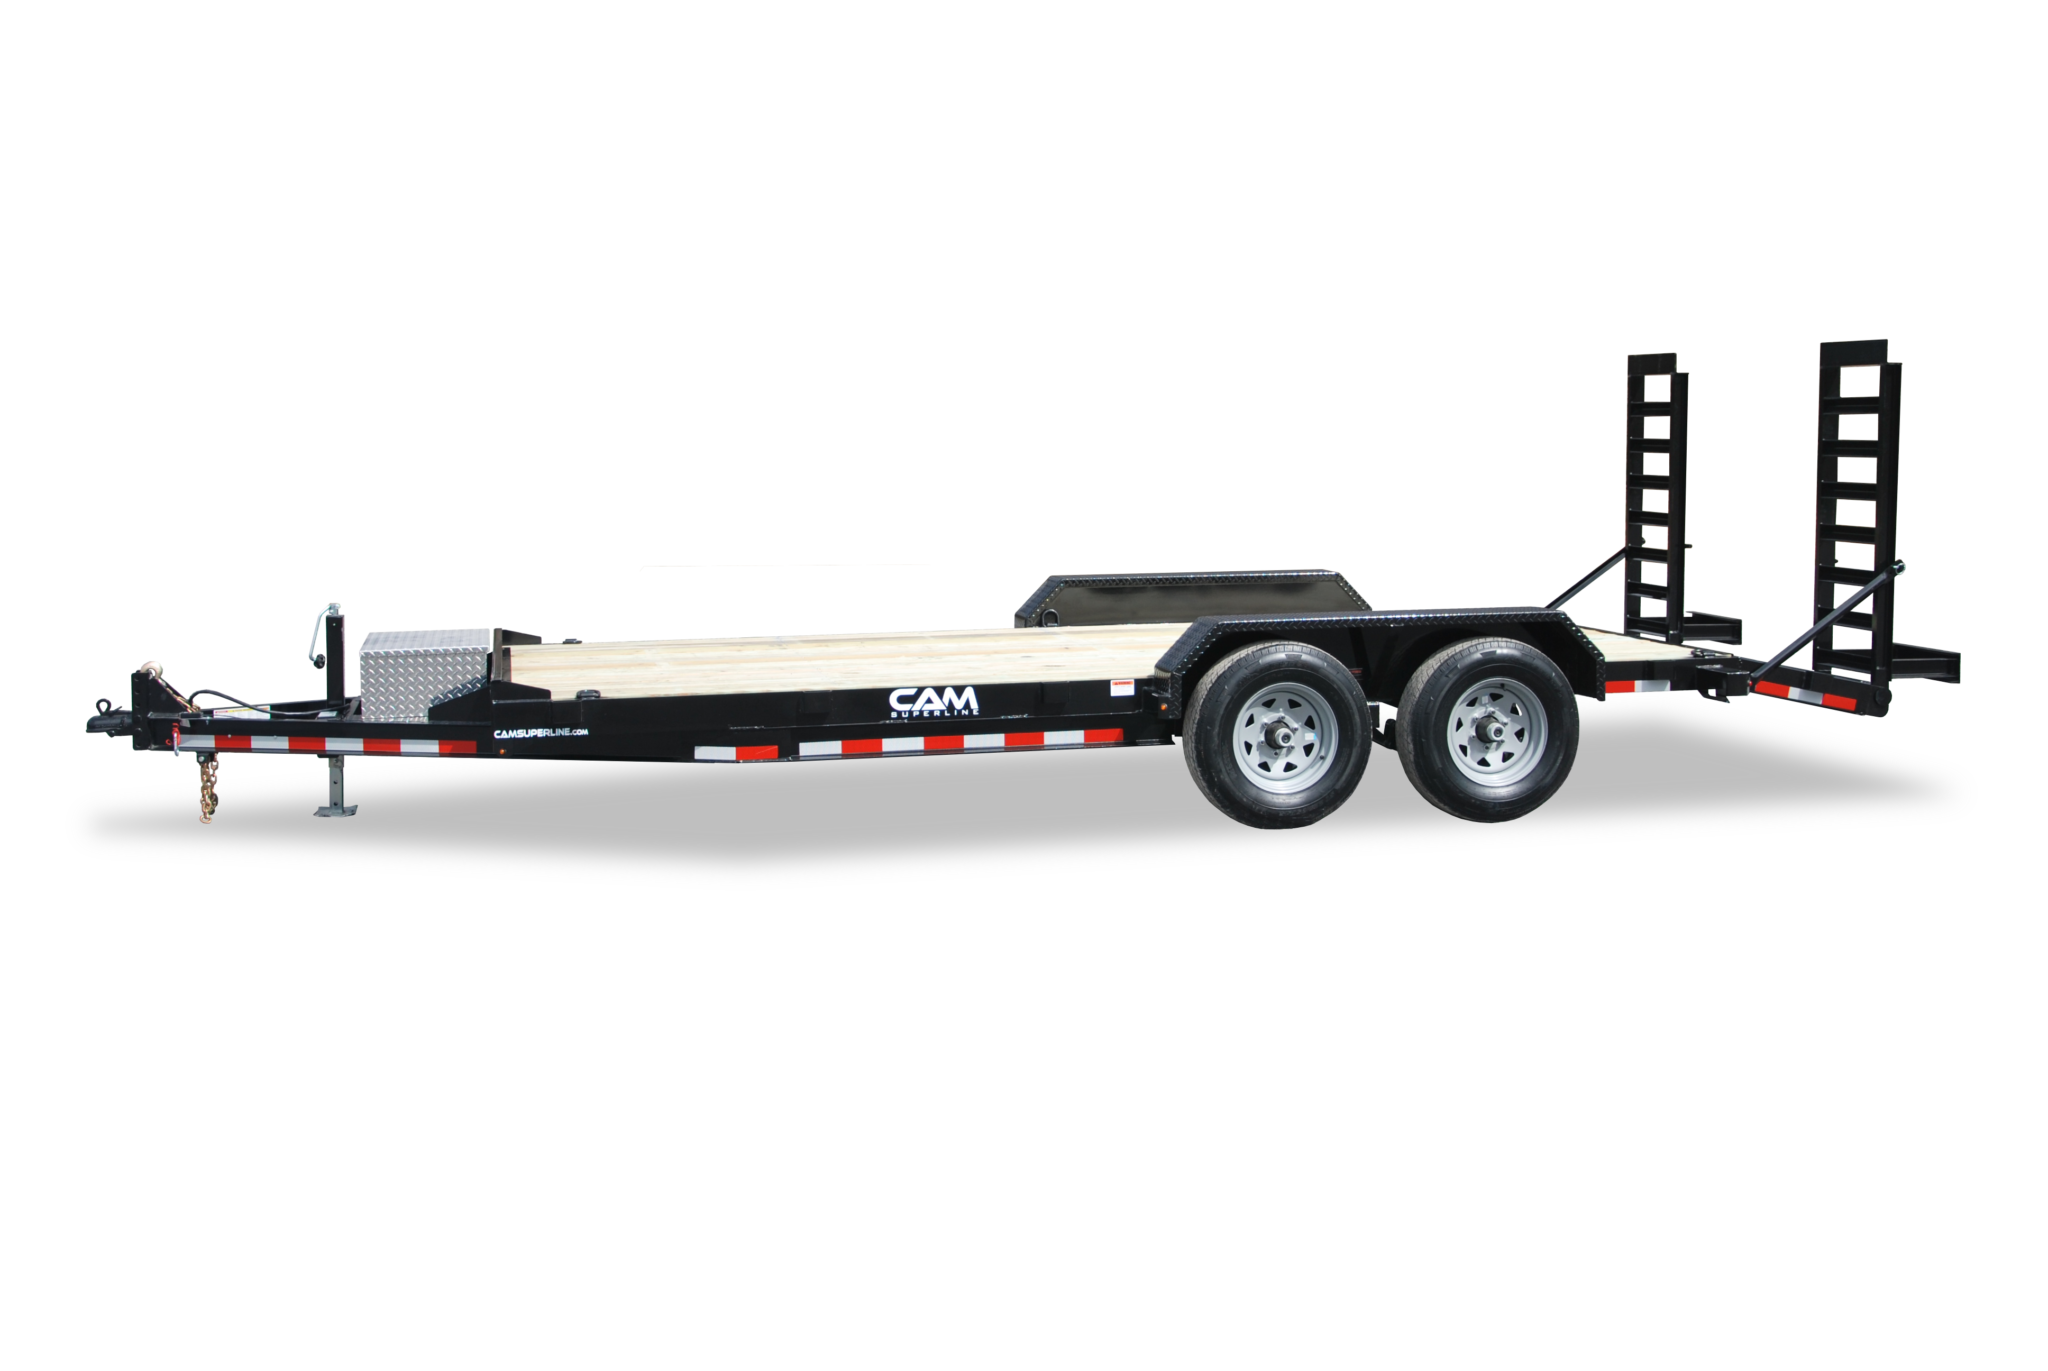 2019 Cam Superline 5 Ton Equipment Hauler Beavertail 8.5 x